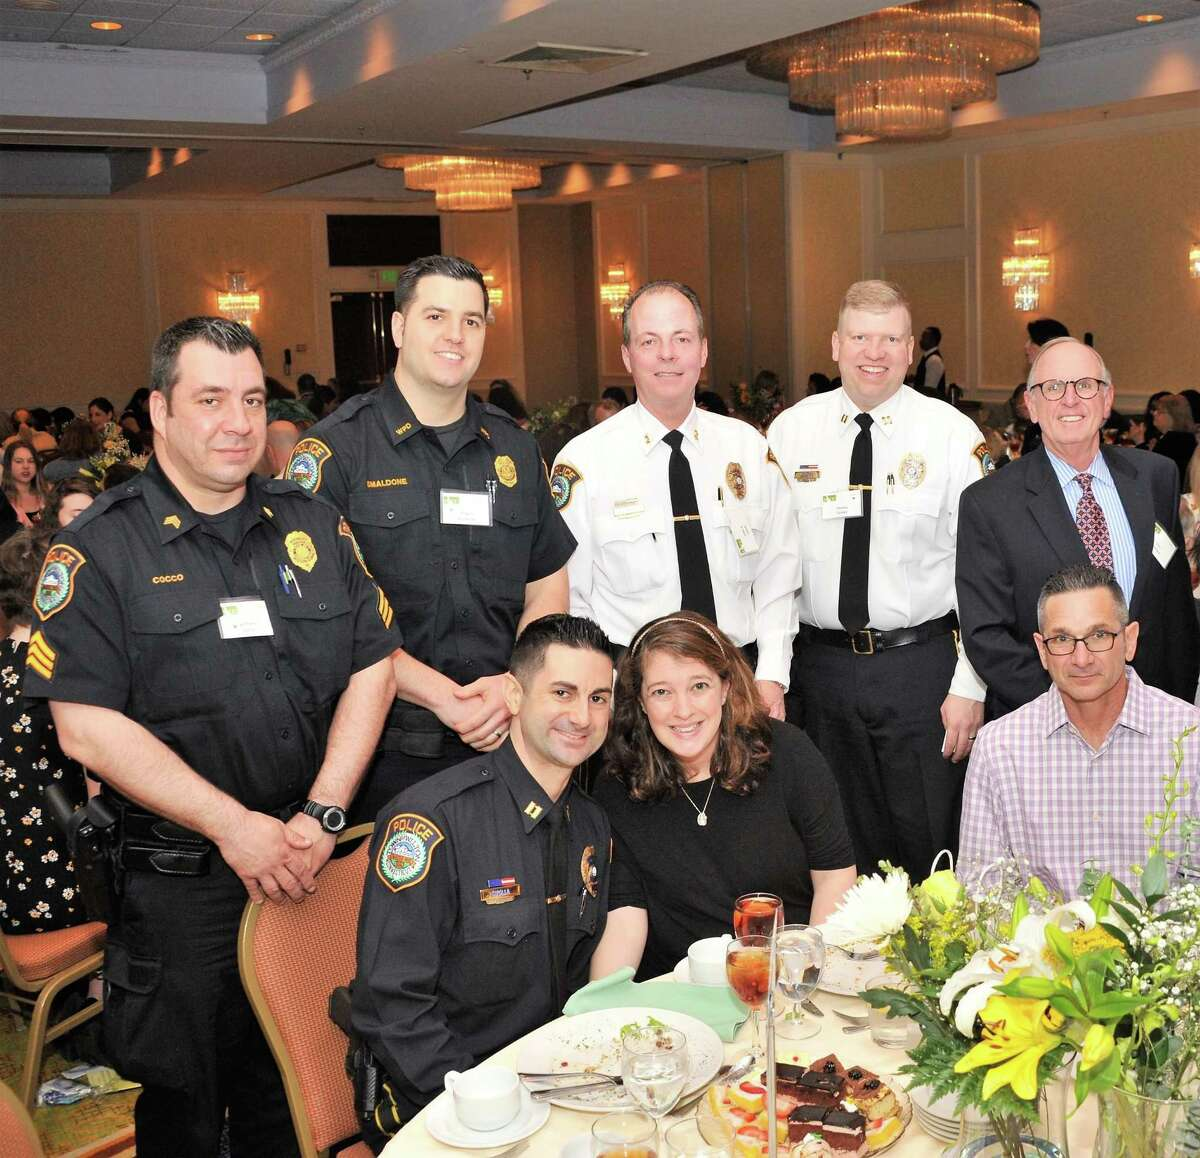 Wilton Police Sgt. Anthony Cocco, Officer Robert Smaldone, Chief John P. Lynch, Capt. Thomas Conlan, Police Commission Chairman Don Sauvigne, Capt. Rob Cipolla, Merianne Cipolla and Robert Cipolla Sr. at the Domestic Violence Crisis Center's 15th annual Spring Luncheon in Stamford on May 11.